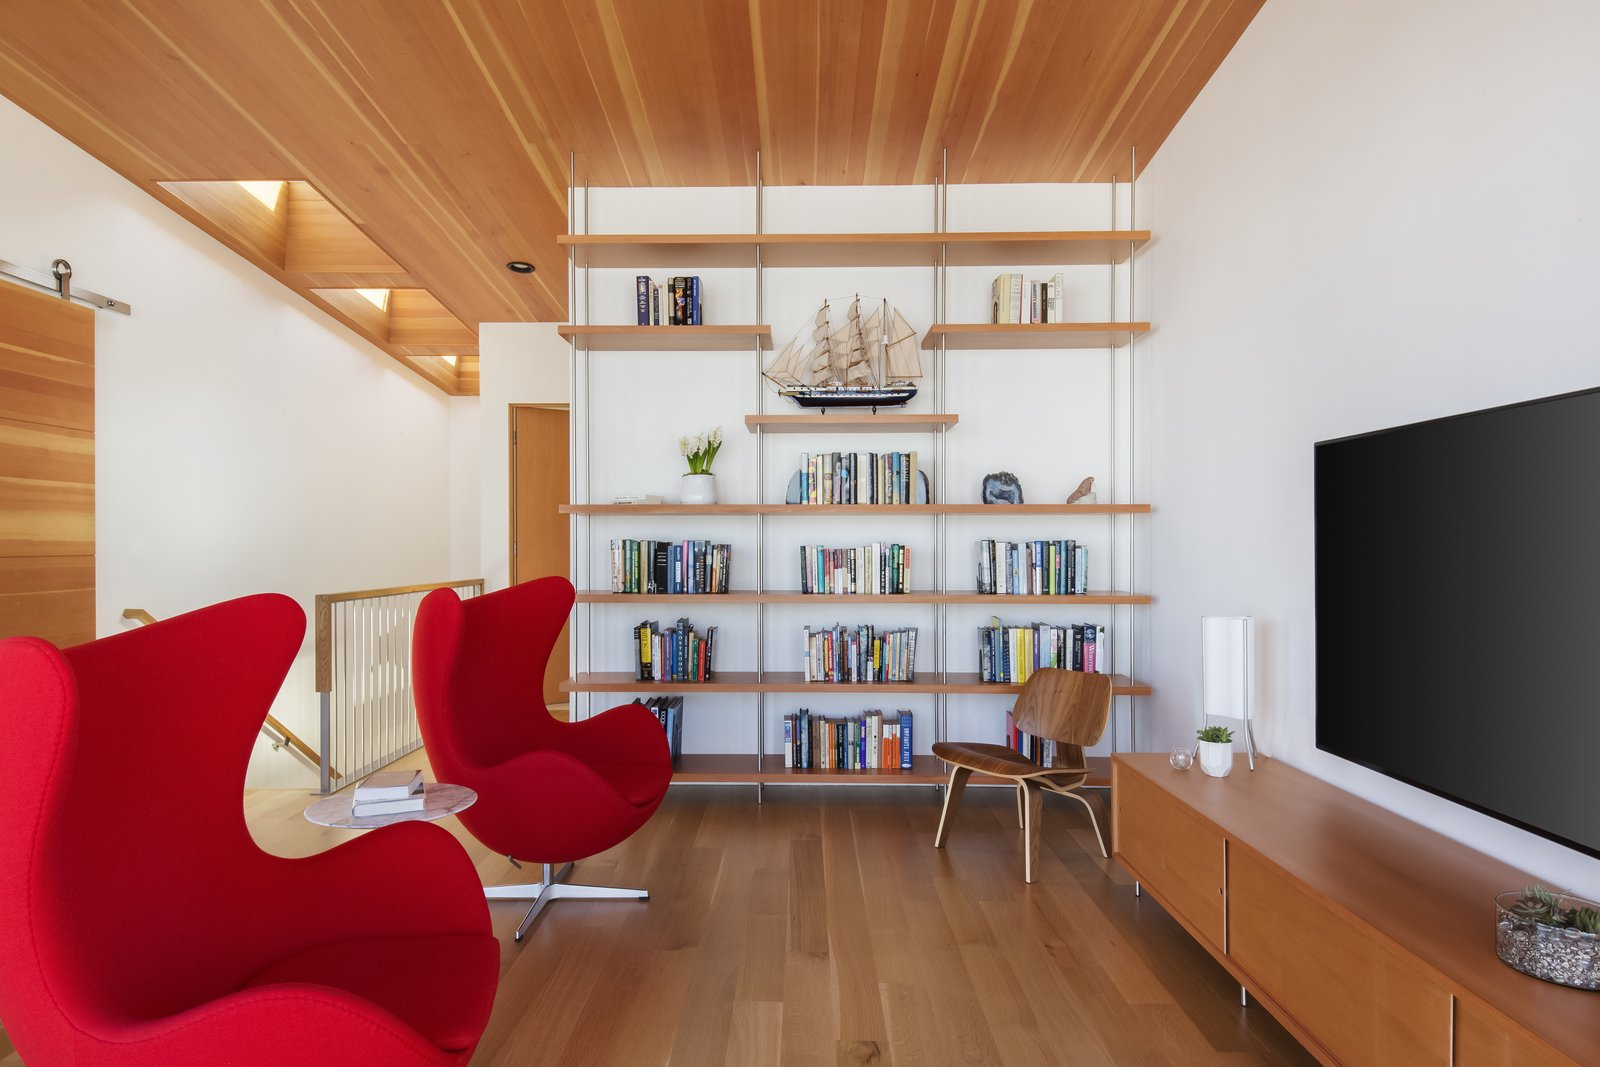 Media Loft  Roads End Beach House by Giulietti / Schouten AIA Architects